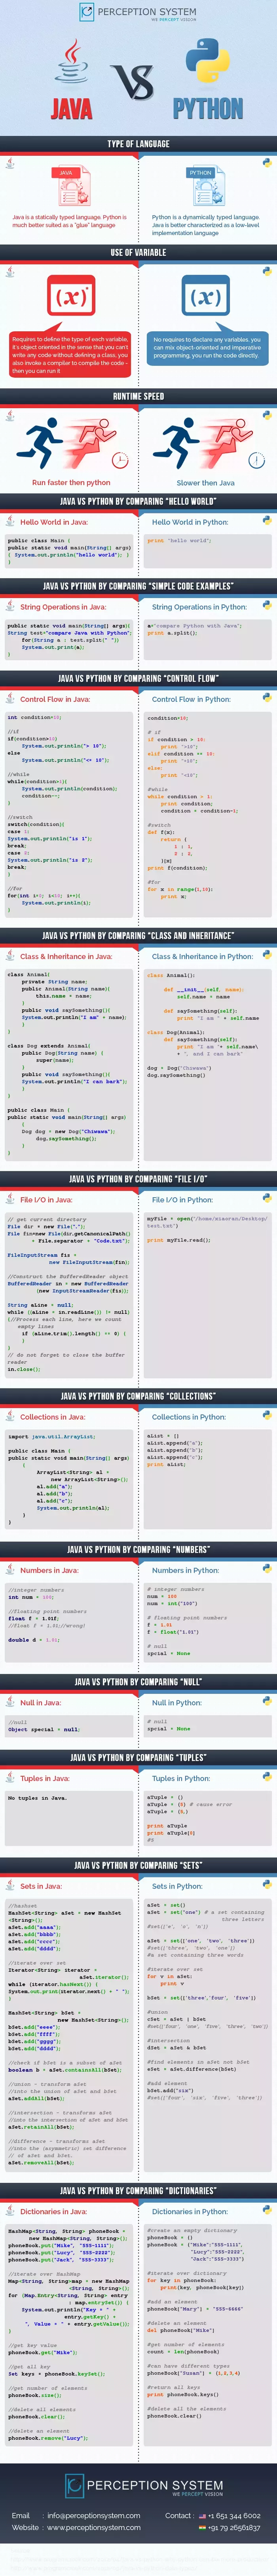 Between Java and Python, which one is better to learn first and why